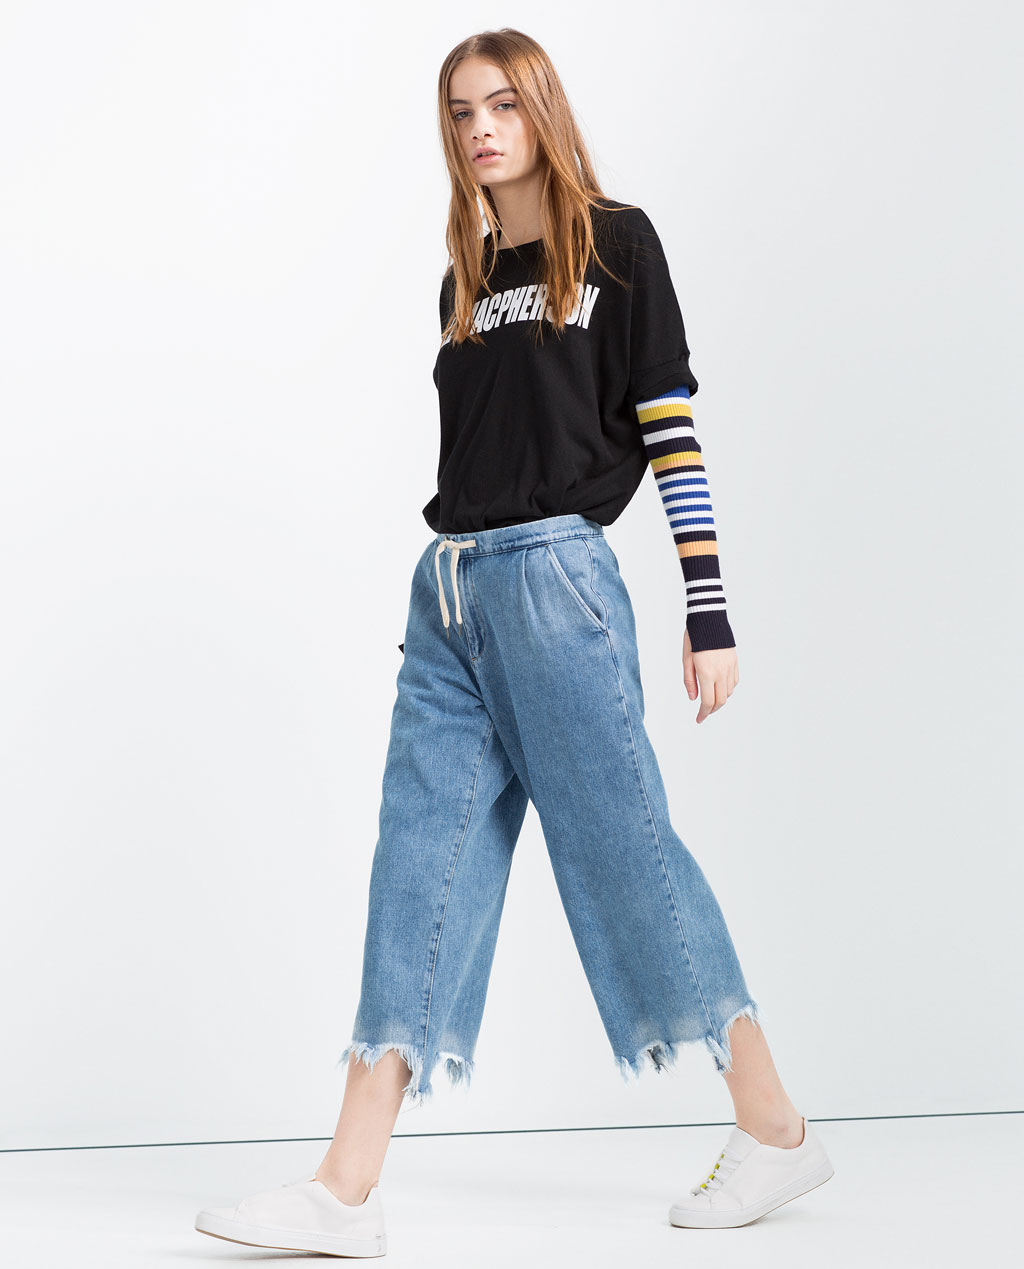 Zara Frayed Denim Culottes £19.99